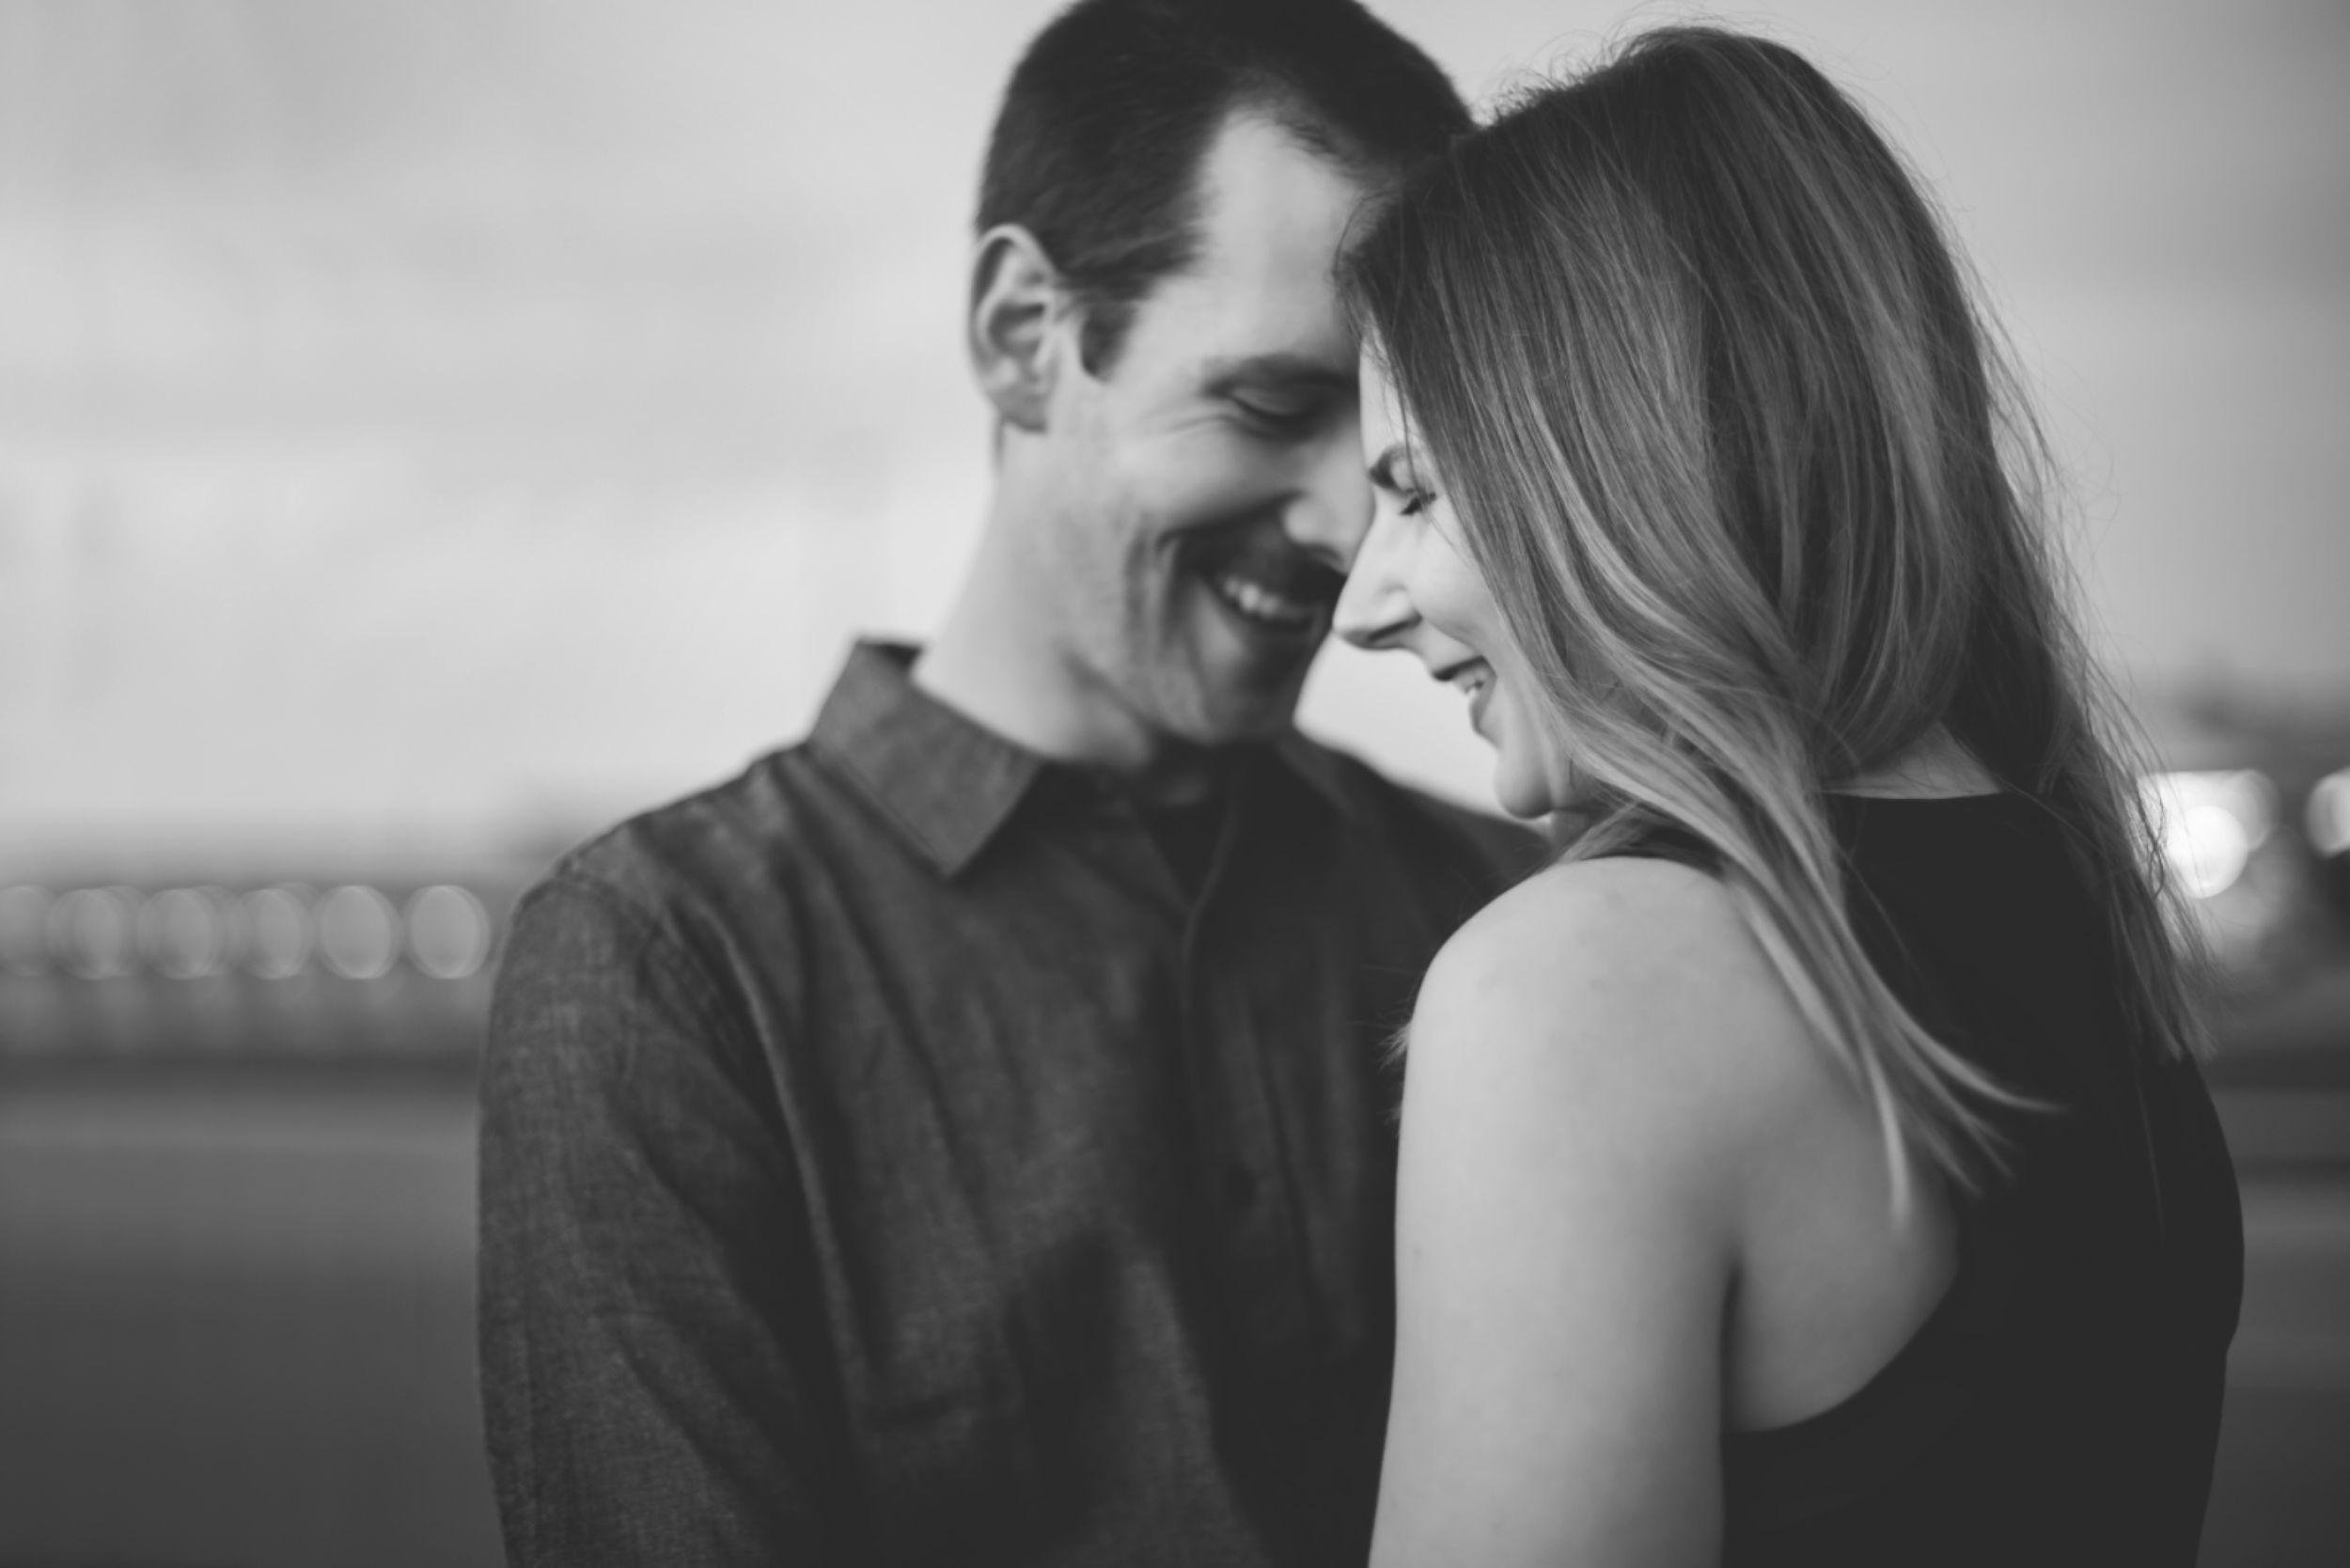 Engagement-Session-Brantford-Hamilton-Burlington-Oakville-Niagara-Toronto-Wedding-Photographer-Engaged-Photography-Golden-Hour-Moments-by-Lauren-Photo-Image-13.png